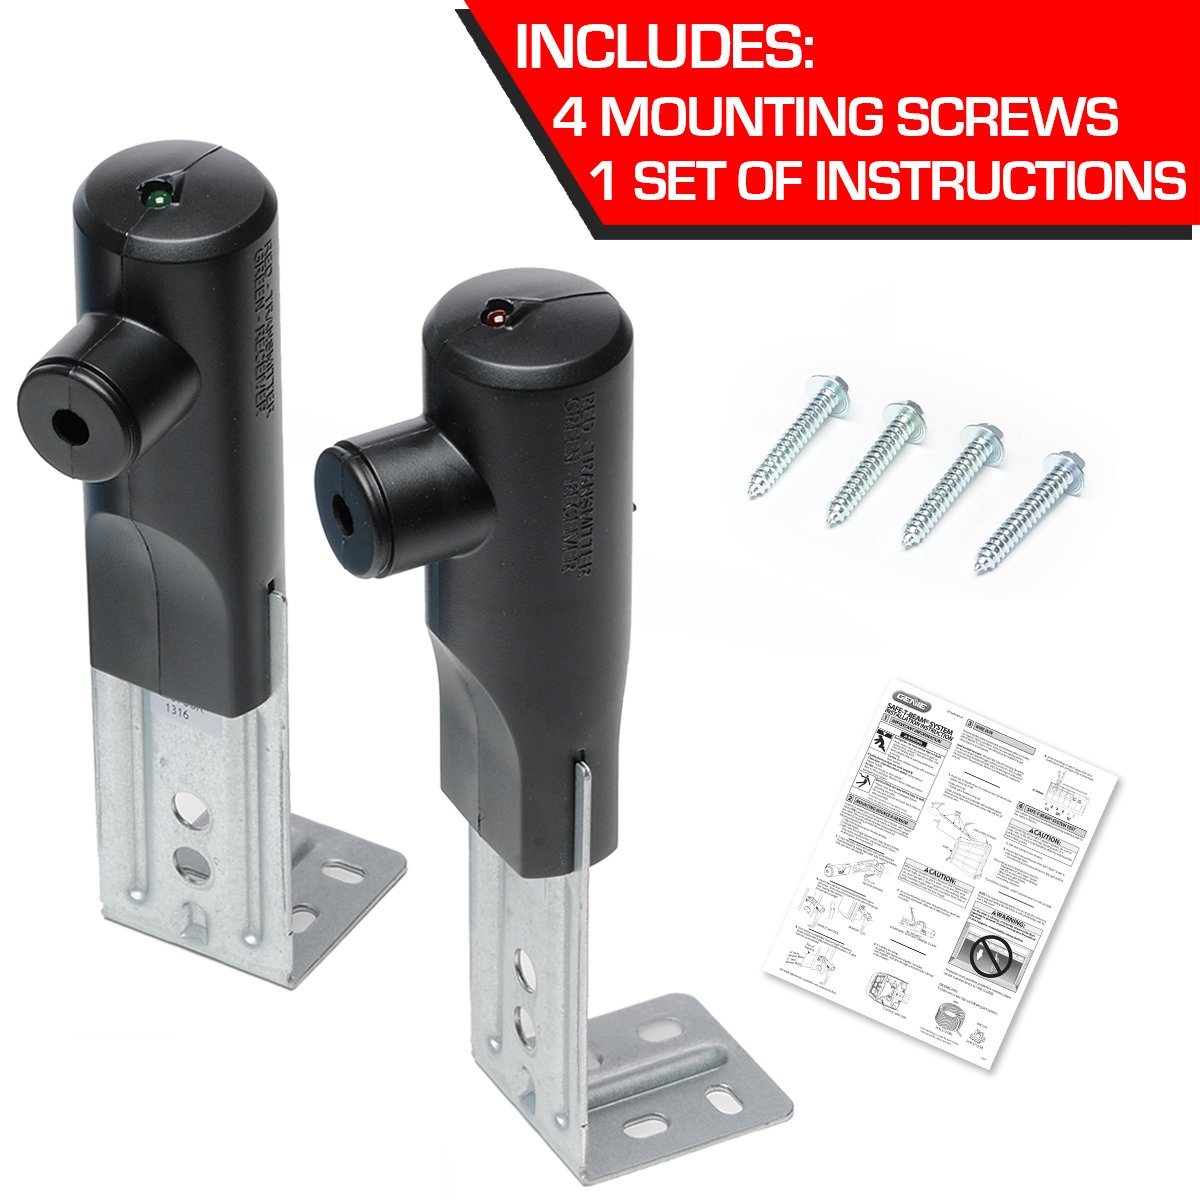 Genie Safe T Beam Garage Door Safety Beams Set Replacement Kit For Wiring As Well Sensor Bypass On Chamberlain Openers Security And Surveillance Products